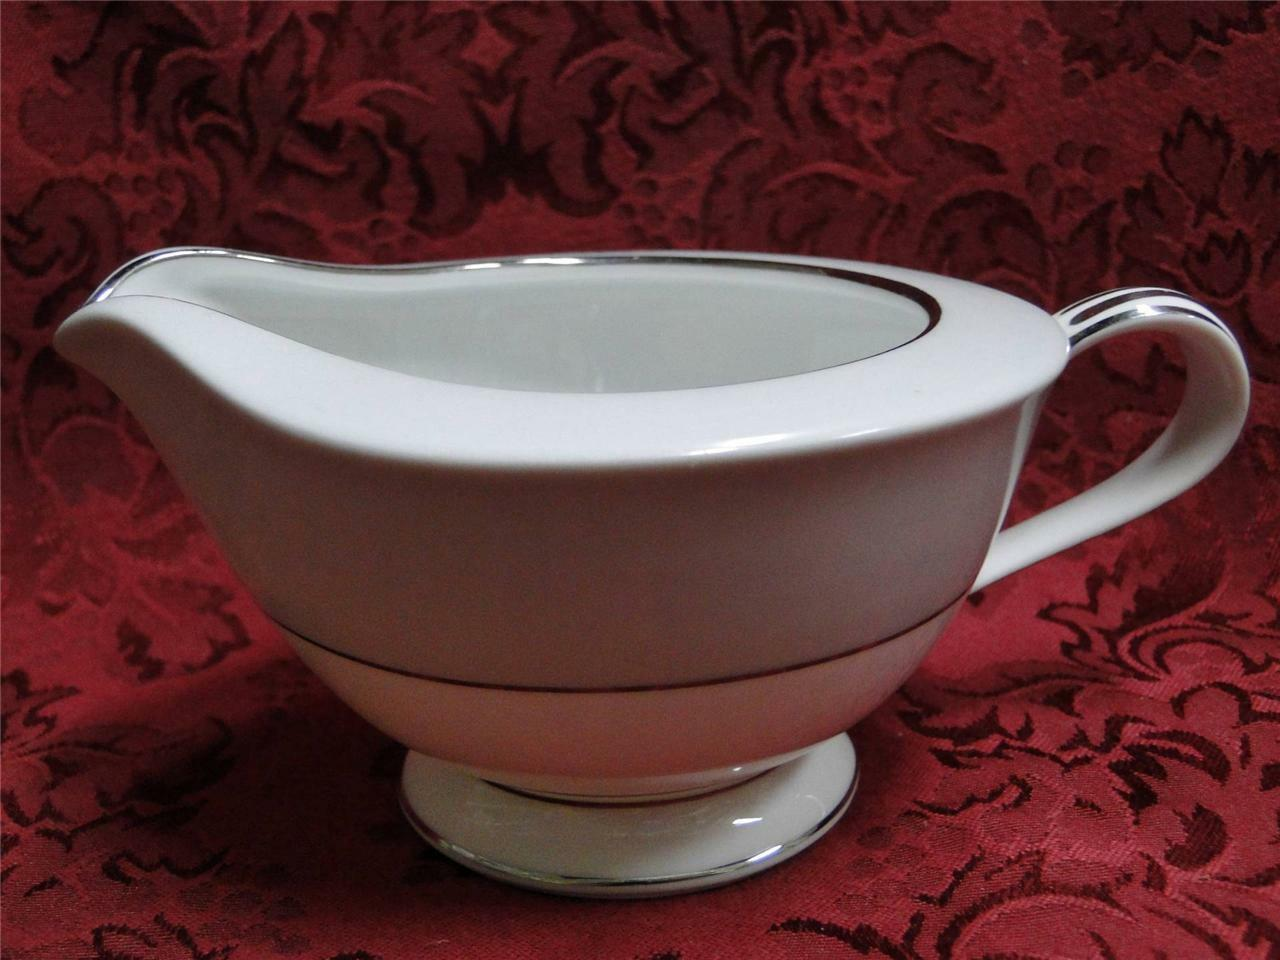 Noritake Grayburn, 5323, Gray Rim, Platinum Trim: Creamer / Cream Pitcher